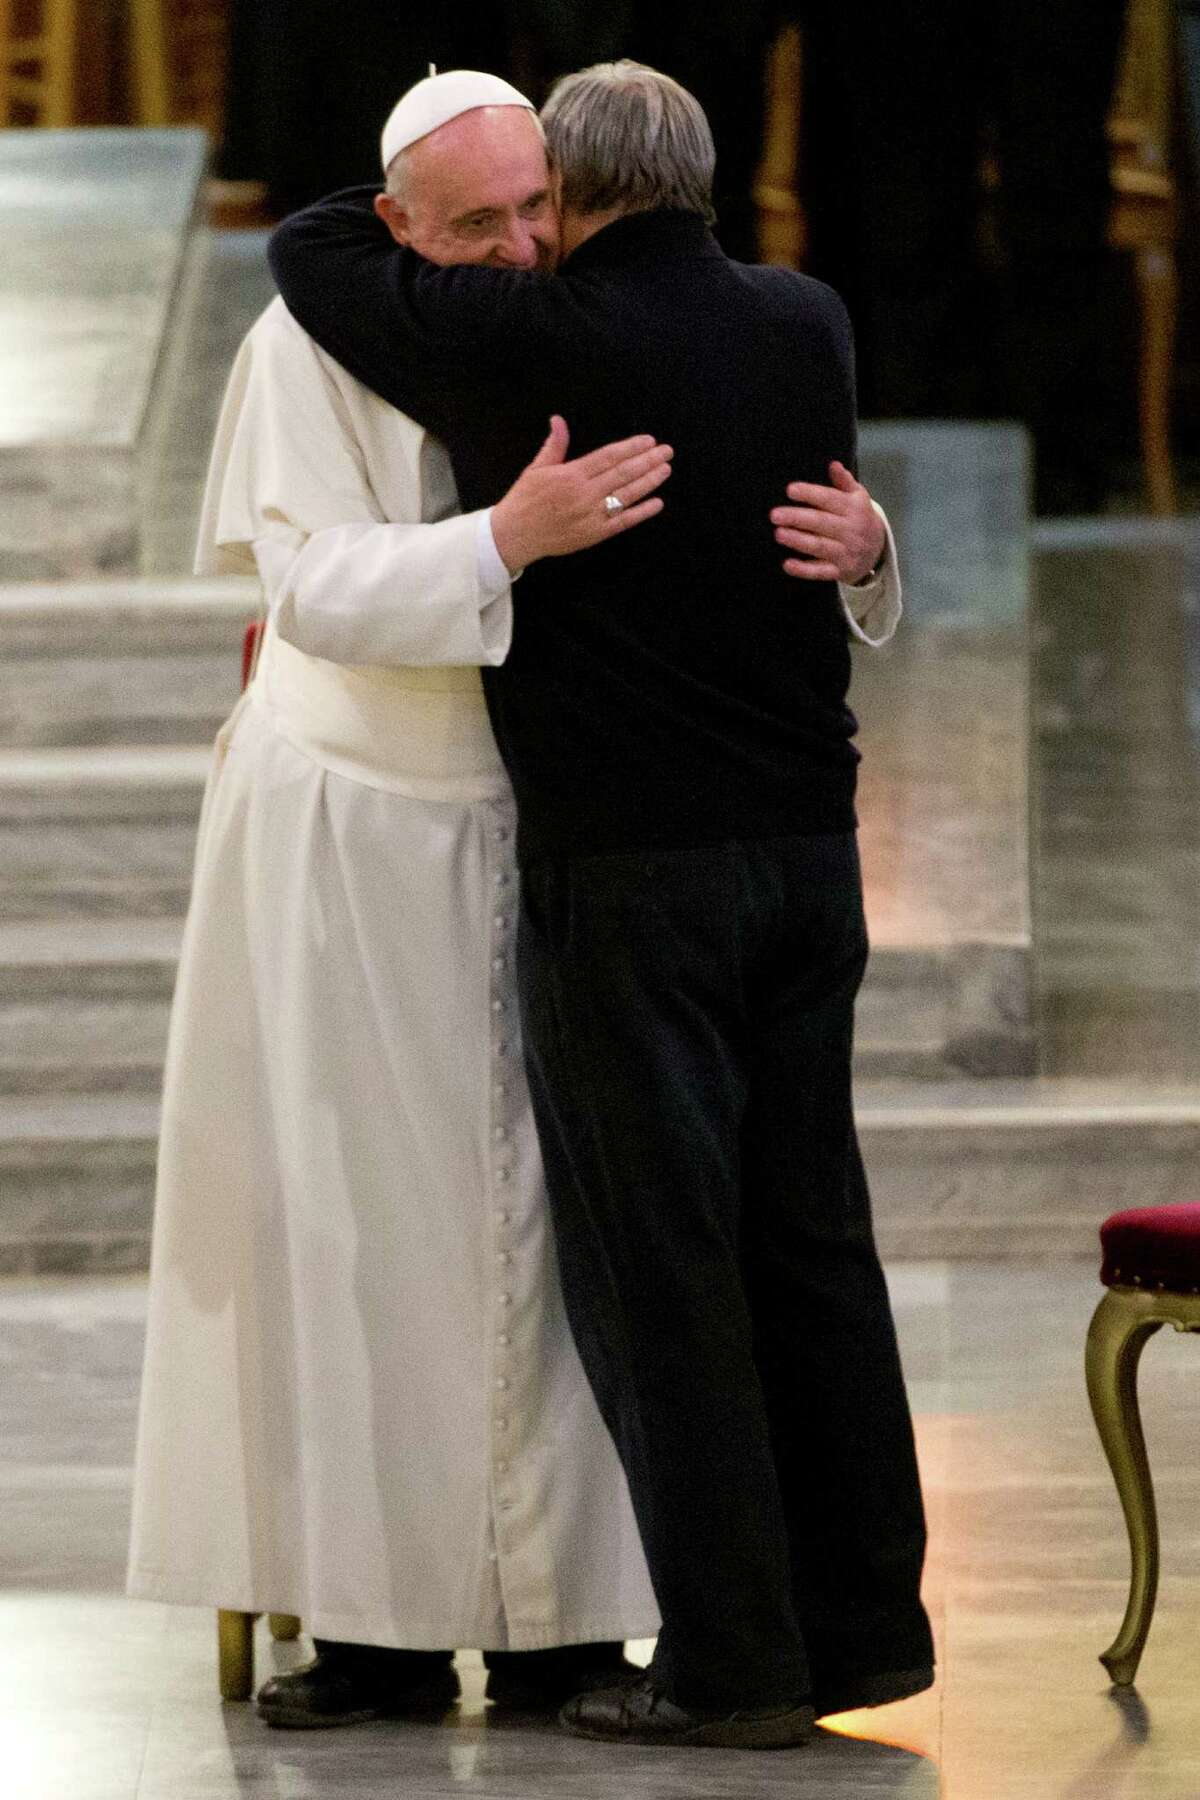 Pope Francis embraces Don Luigi Ciotti as he arrives for a meeting with relatives of innocent mafia victims, in Rome's St. Gregorio VII church, just outside the Vatican, Friday, March 21, 2014.